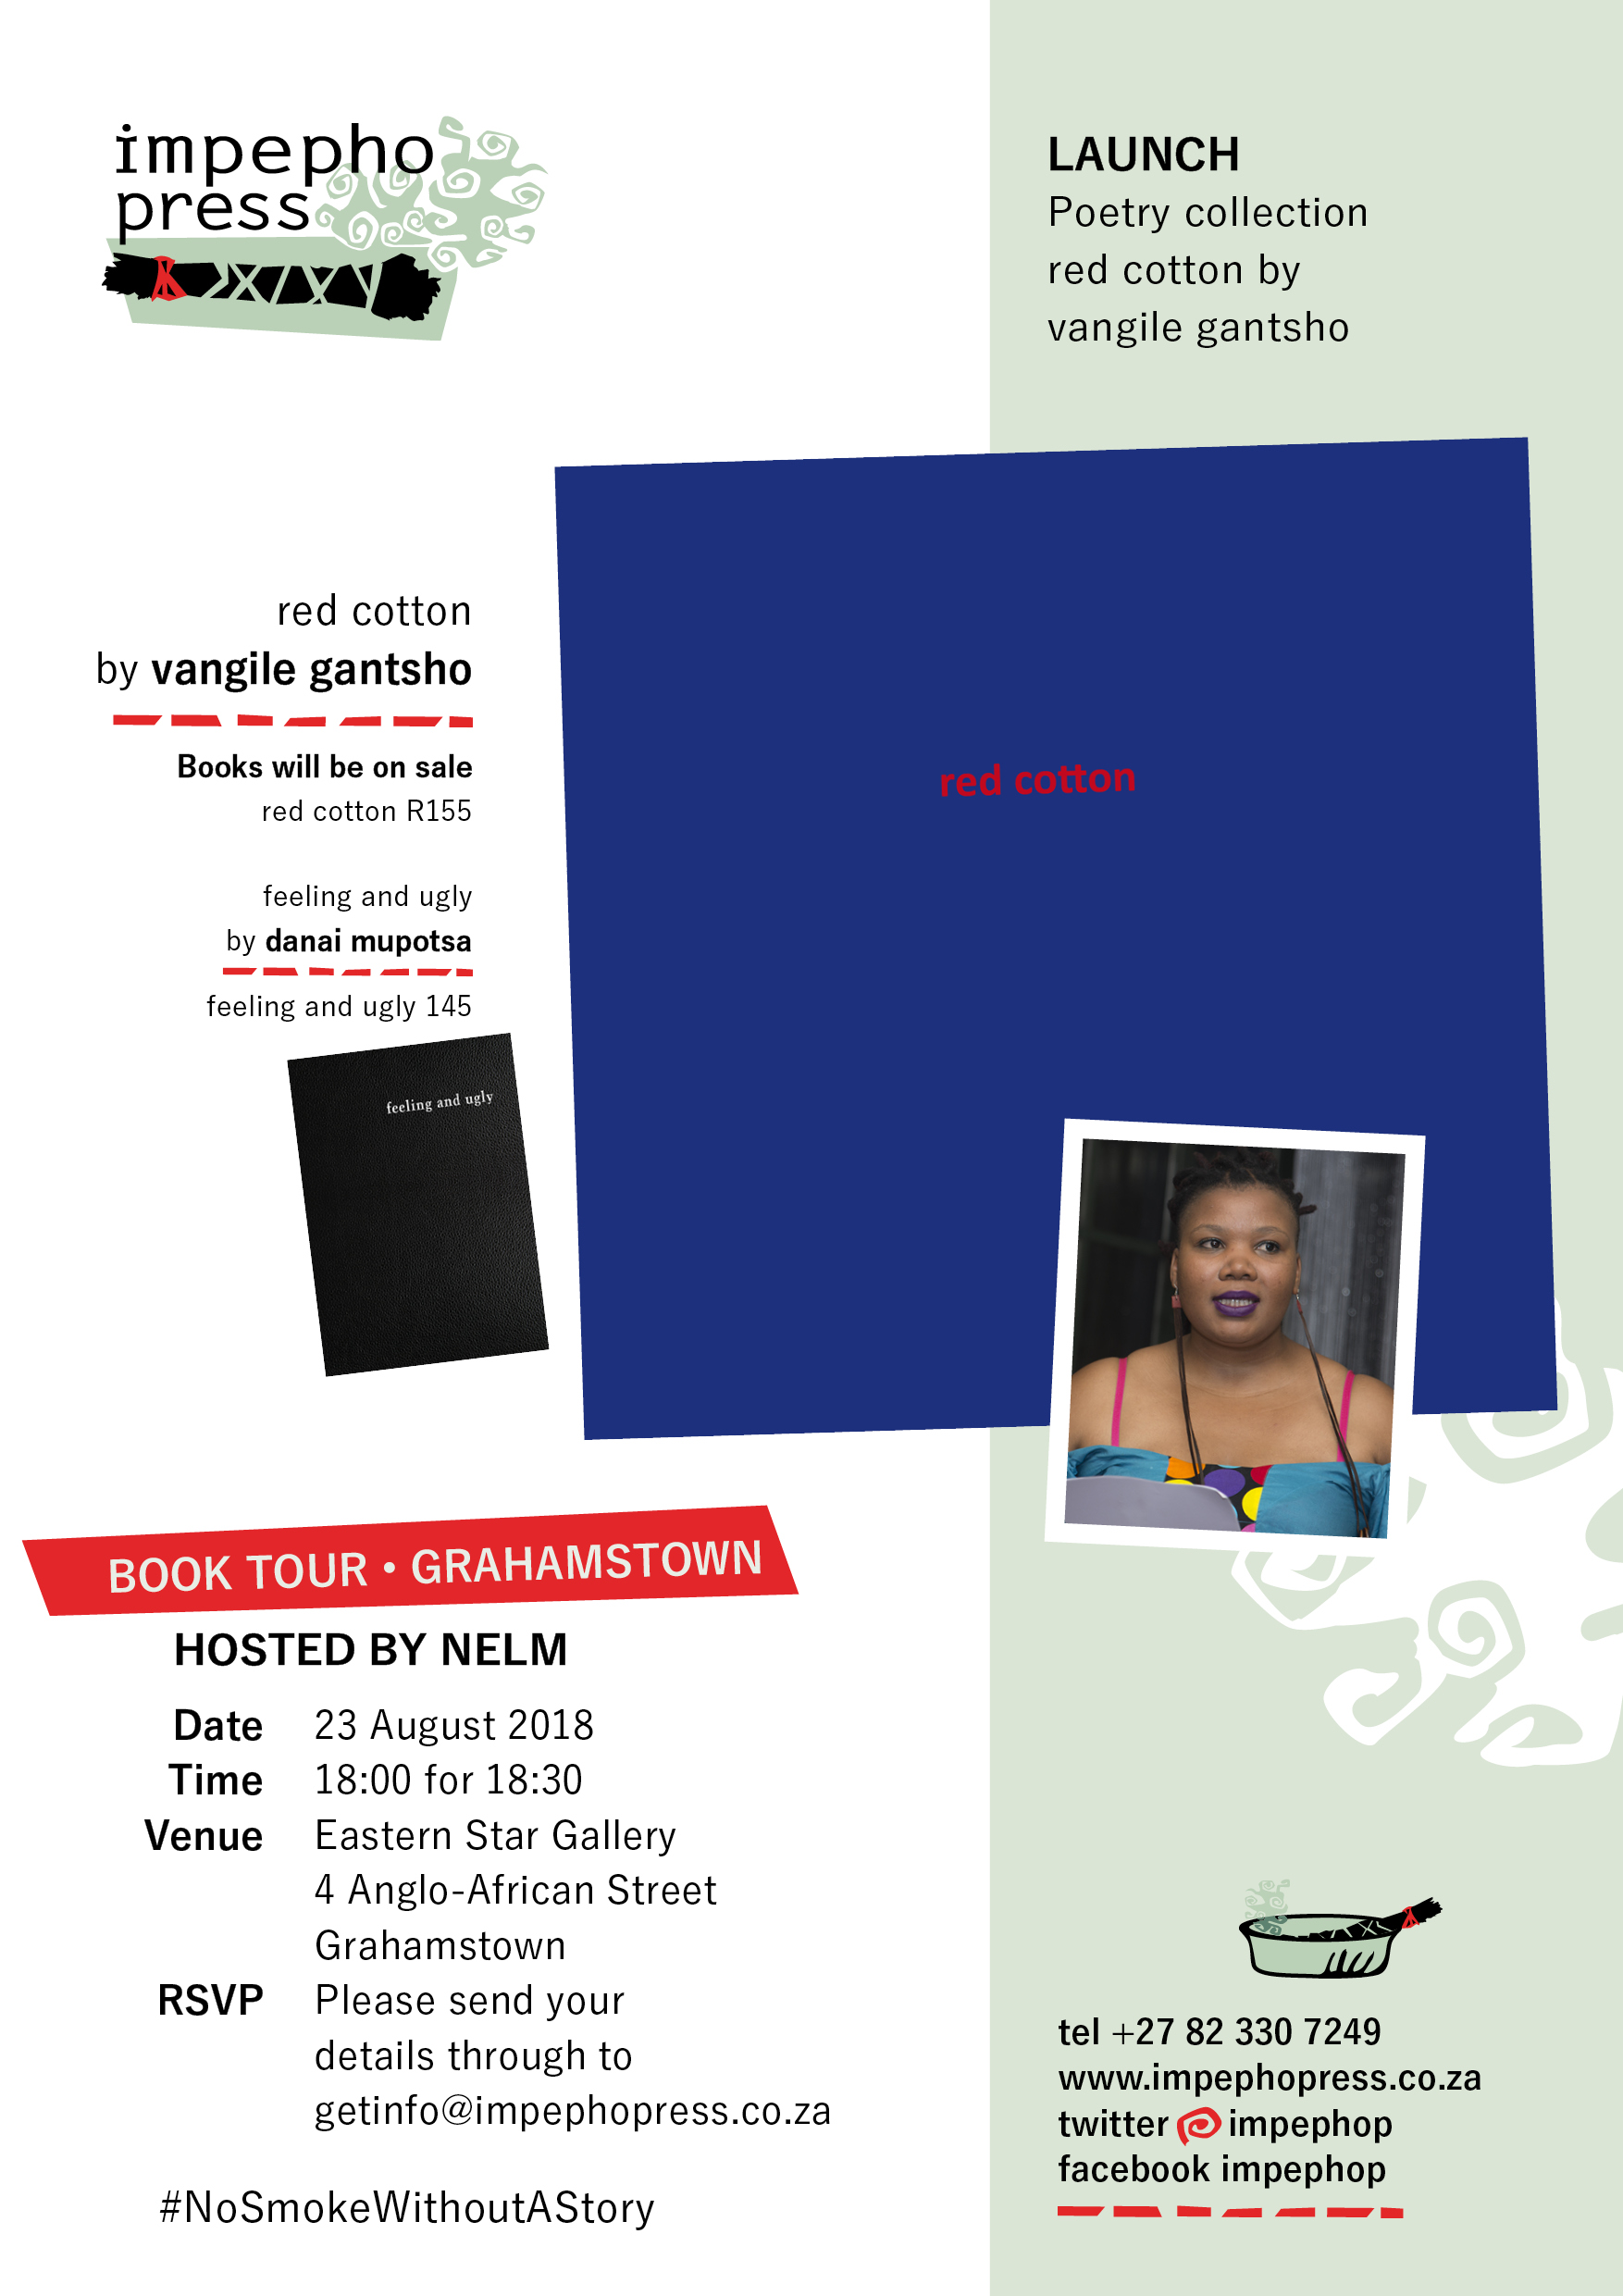 grahamstown, vangile gantsho, red cotton launch, august 2018, eastern star gallery